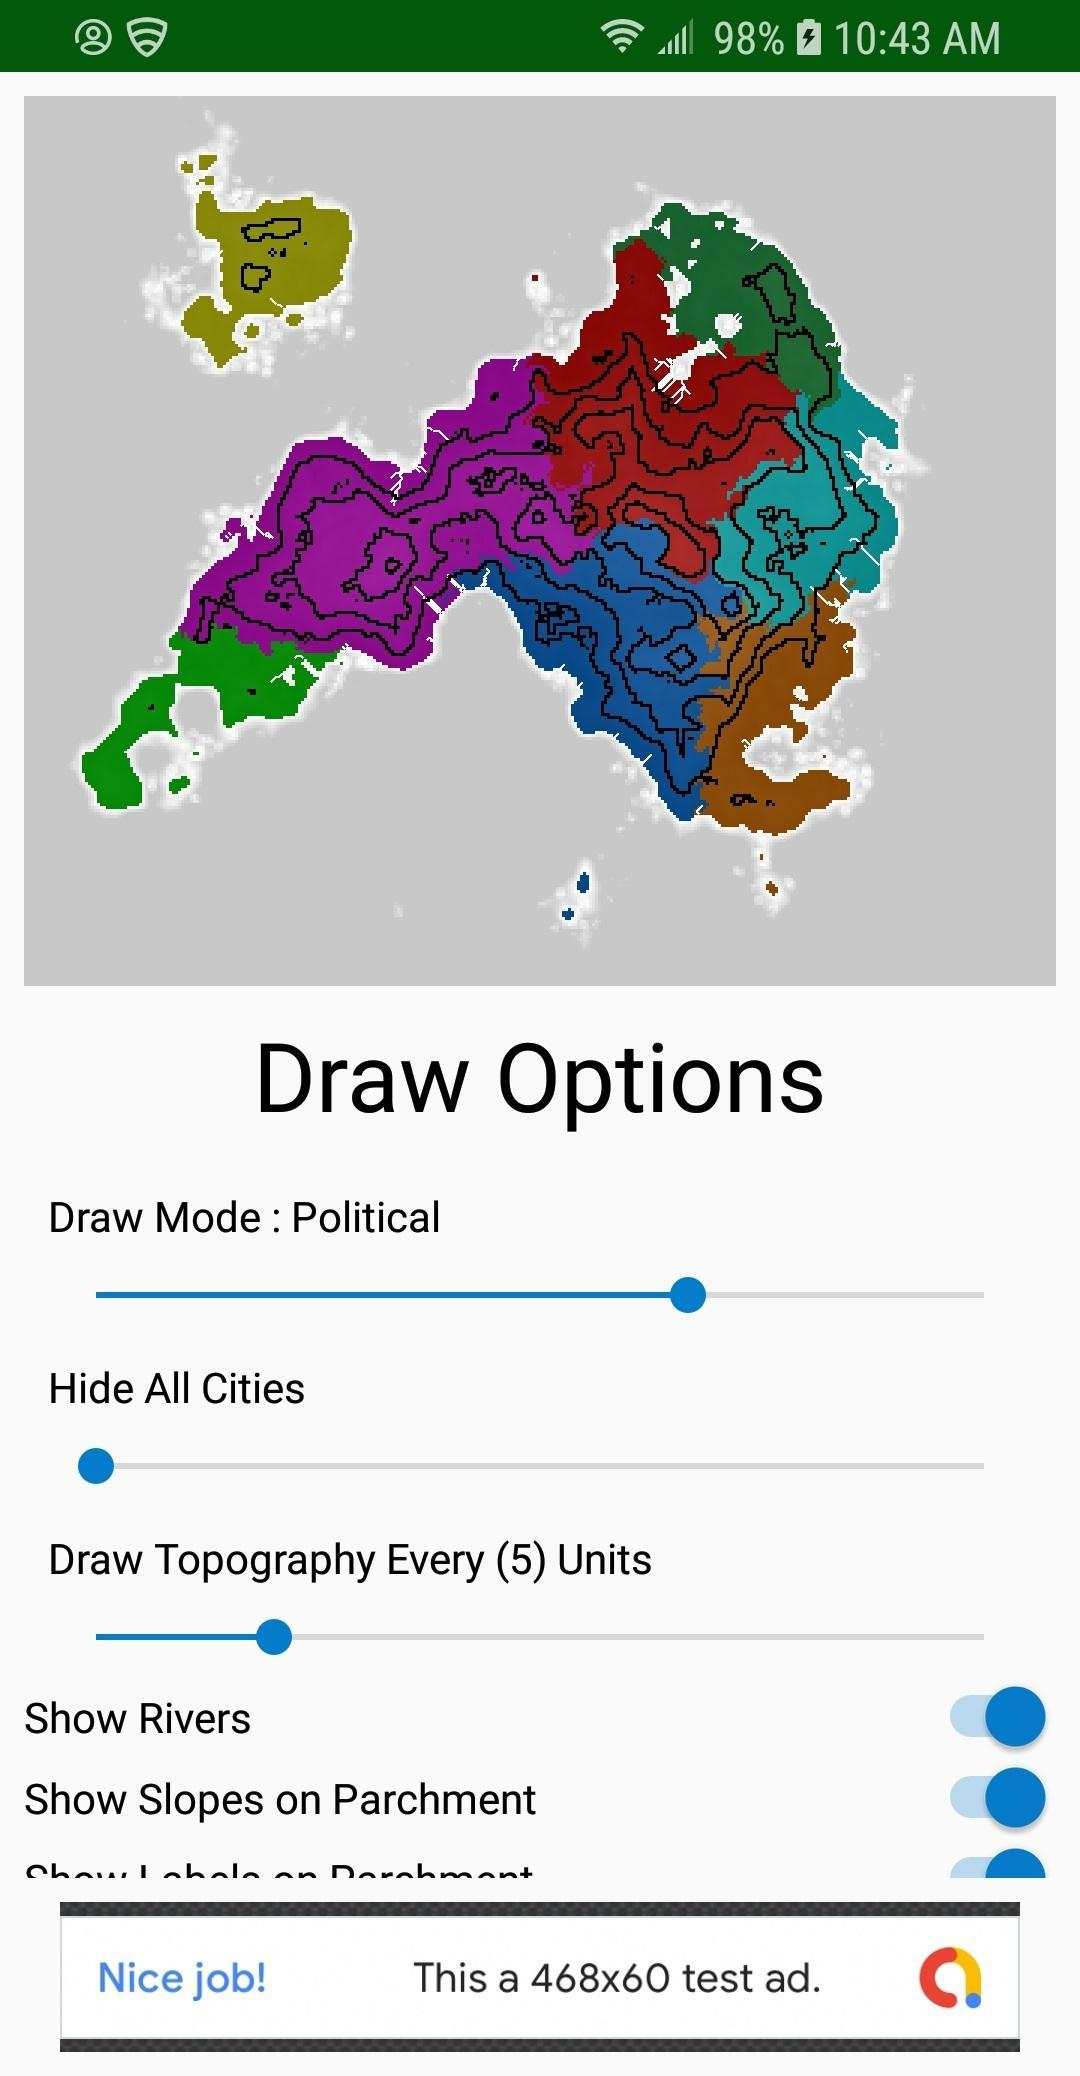 Fantasy Map Maker - Worlds for Android - APK Download on map of my own country, map marker, google moon, google grants, map pin icon, map united interstate highway, map house, map holder, google sync, map paul, map company, web mapping, google wallet, map machine, map of a gazelle, google custom search, map mall, map of destruction of usa, map of heaven, map maze, map light, map mark, google maps, map tiles, google patents, yahoo! maps, map app, map street usa google texas viewgroves, map case, zygote body,